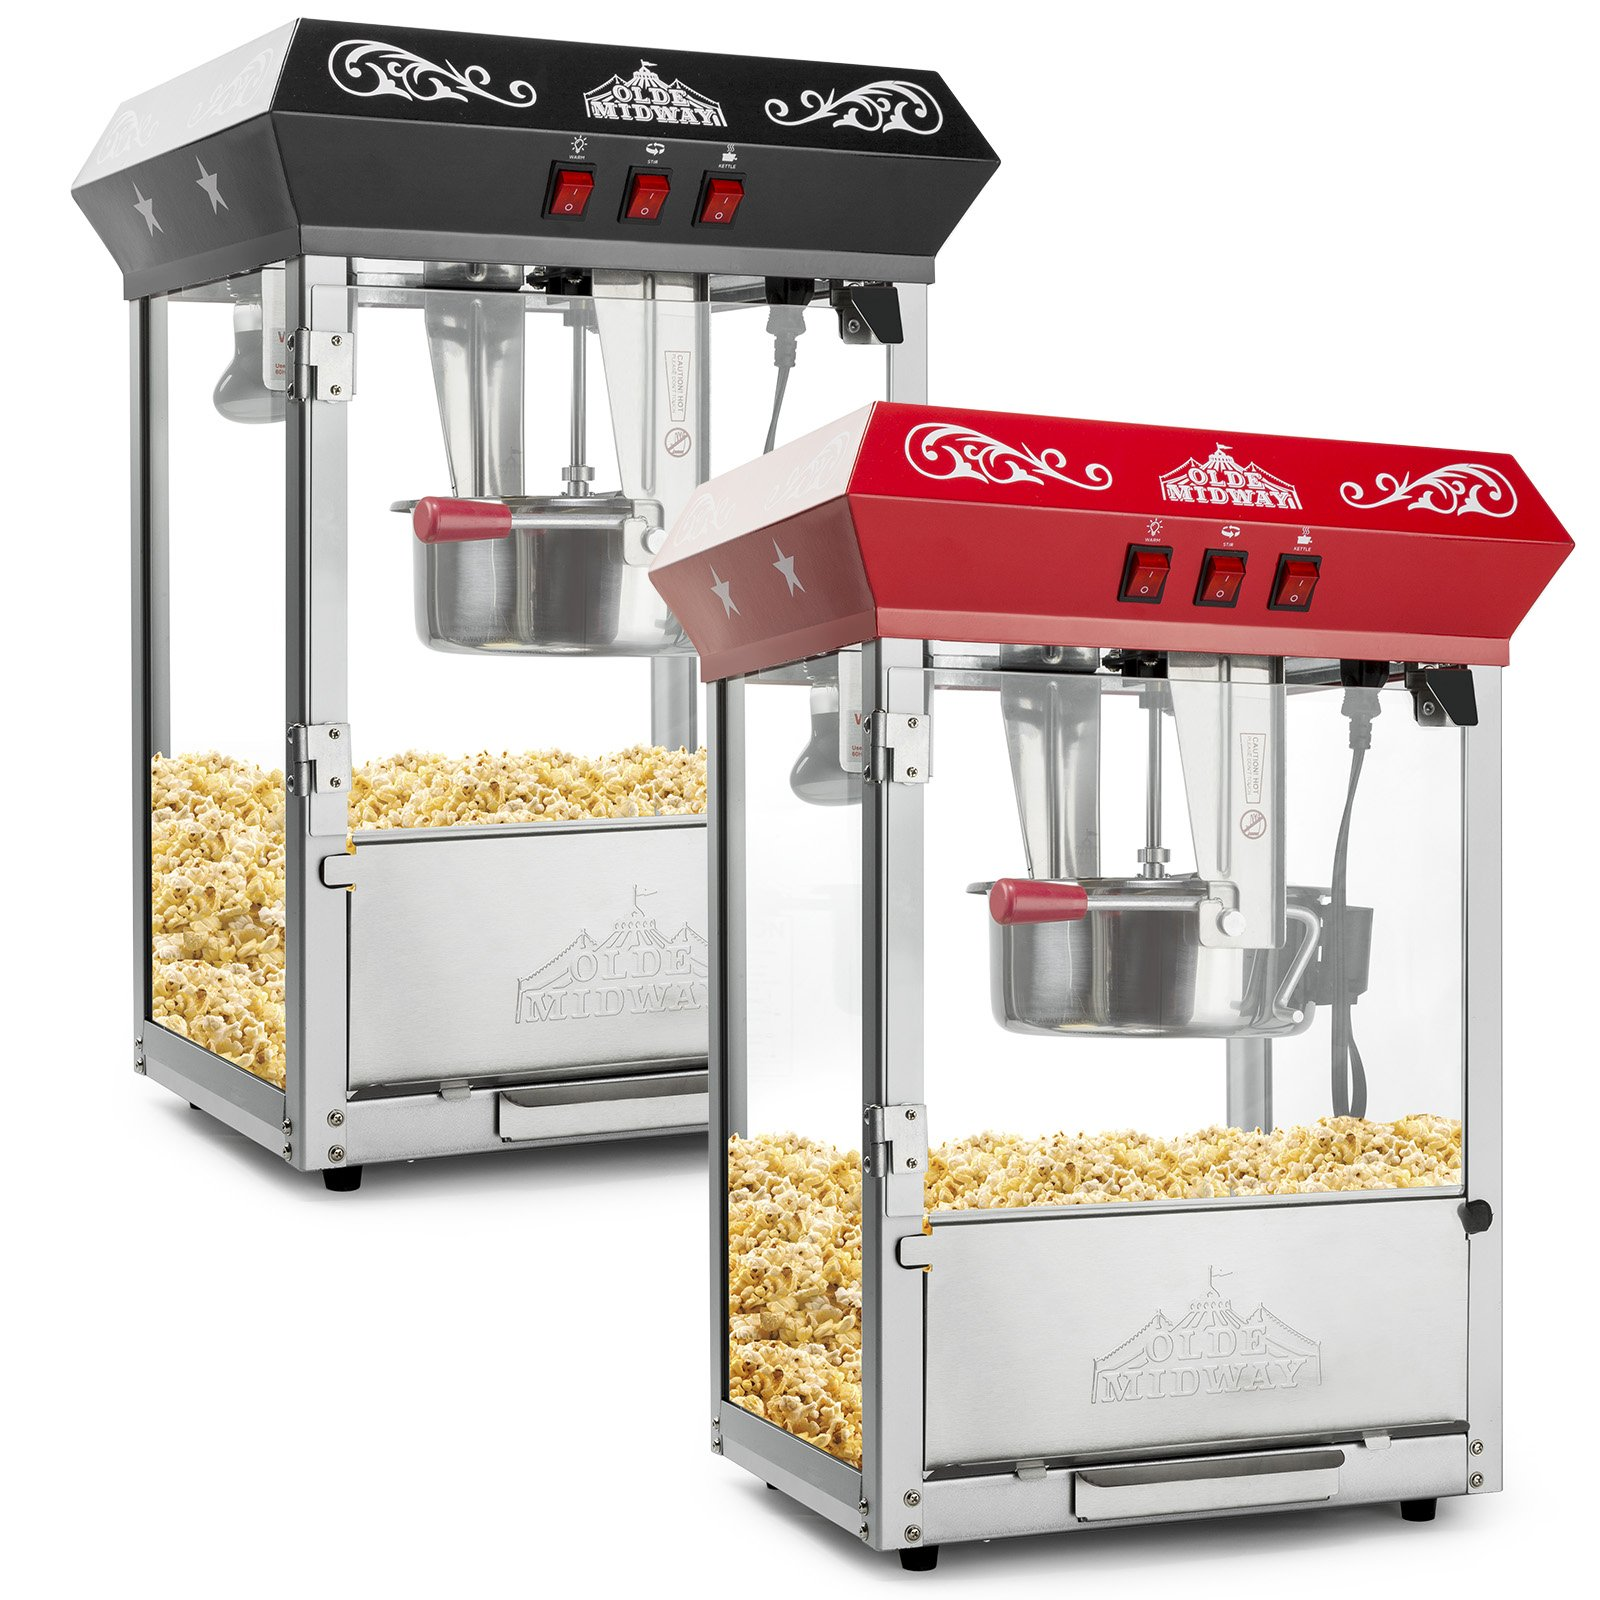 Olde Midway Bar Style Popcorn Machine Maker Popper with 8-Ounce Kettle - Red